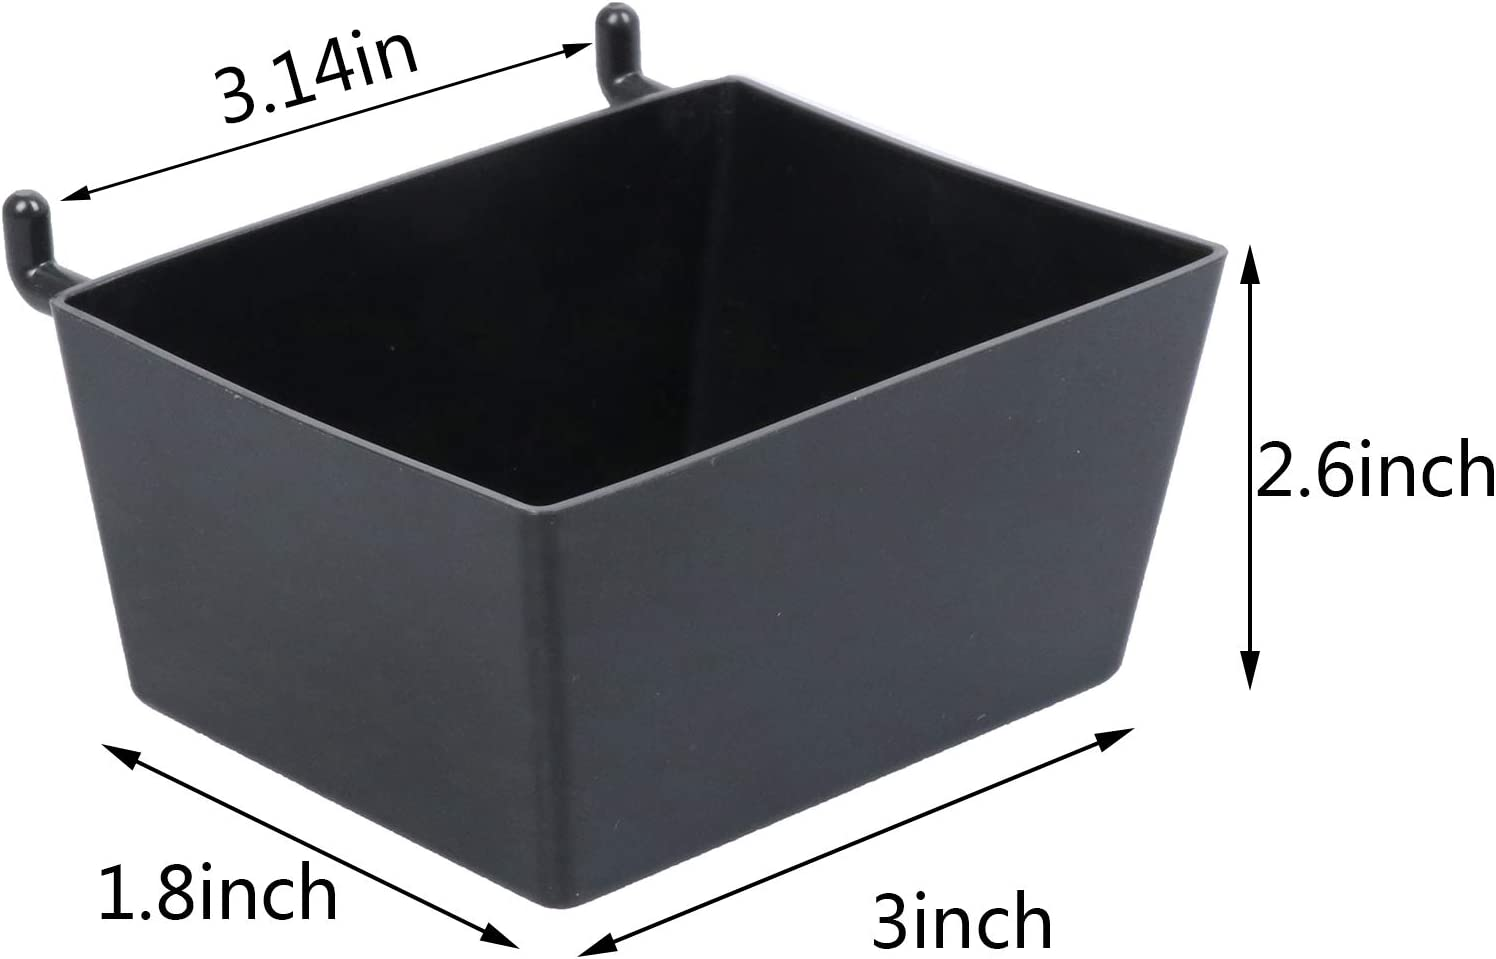 Hobby Supplies TIANTIAN 5 Pcs Pegboard Bins Kit Pegboard Parts Storage Bin Plastic Hanging Stacking Workbench Bins for Organizing Hardware,Small Parts